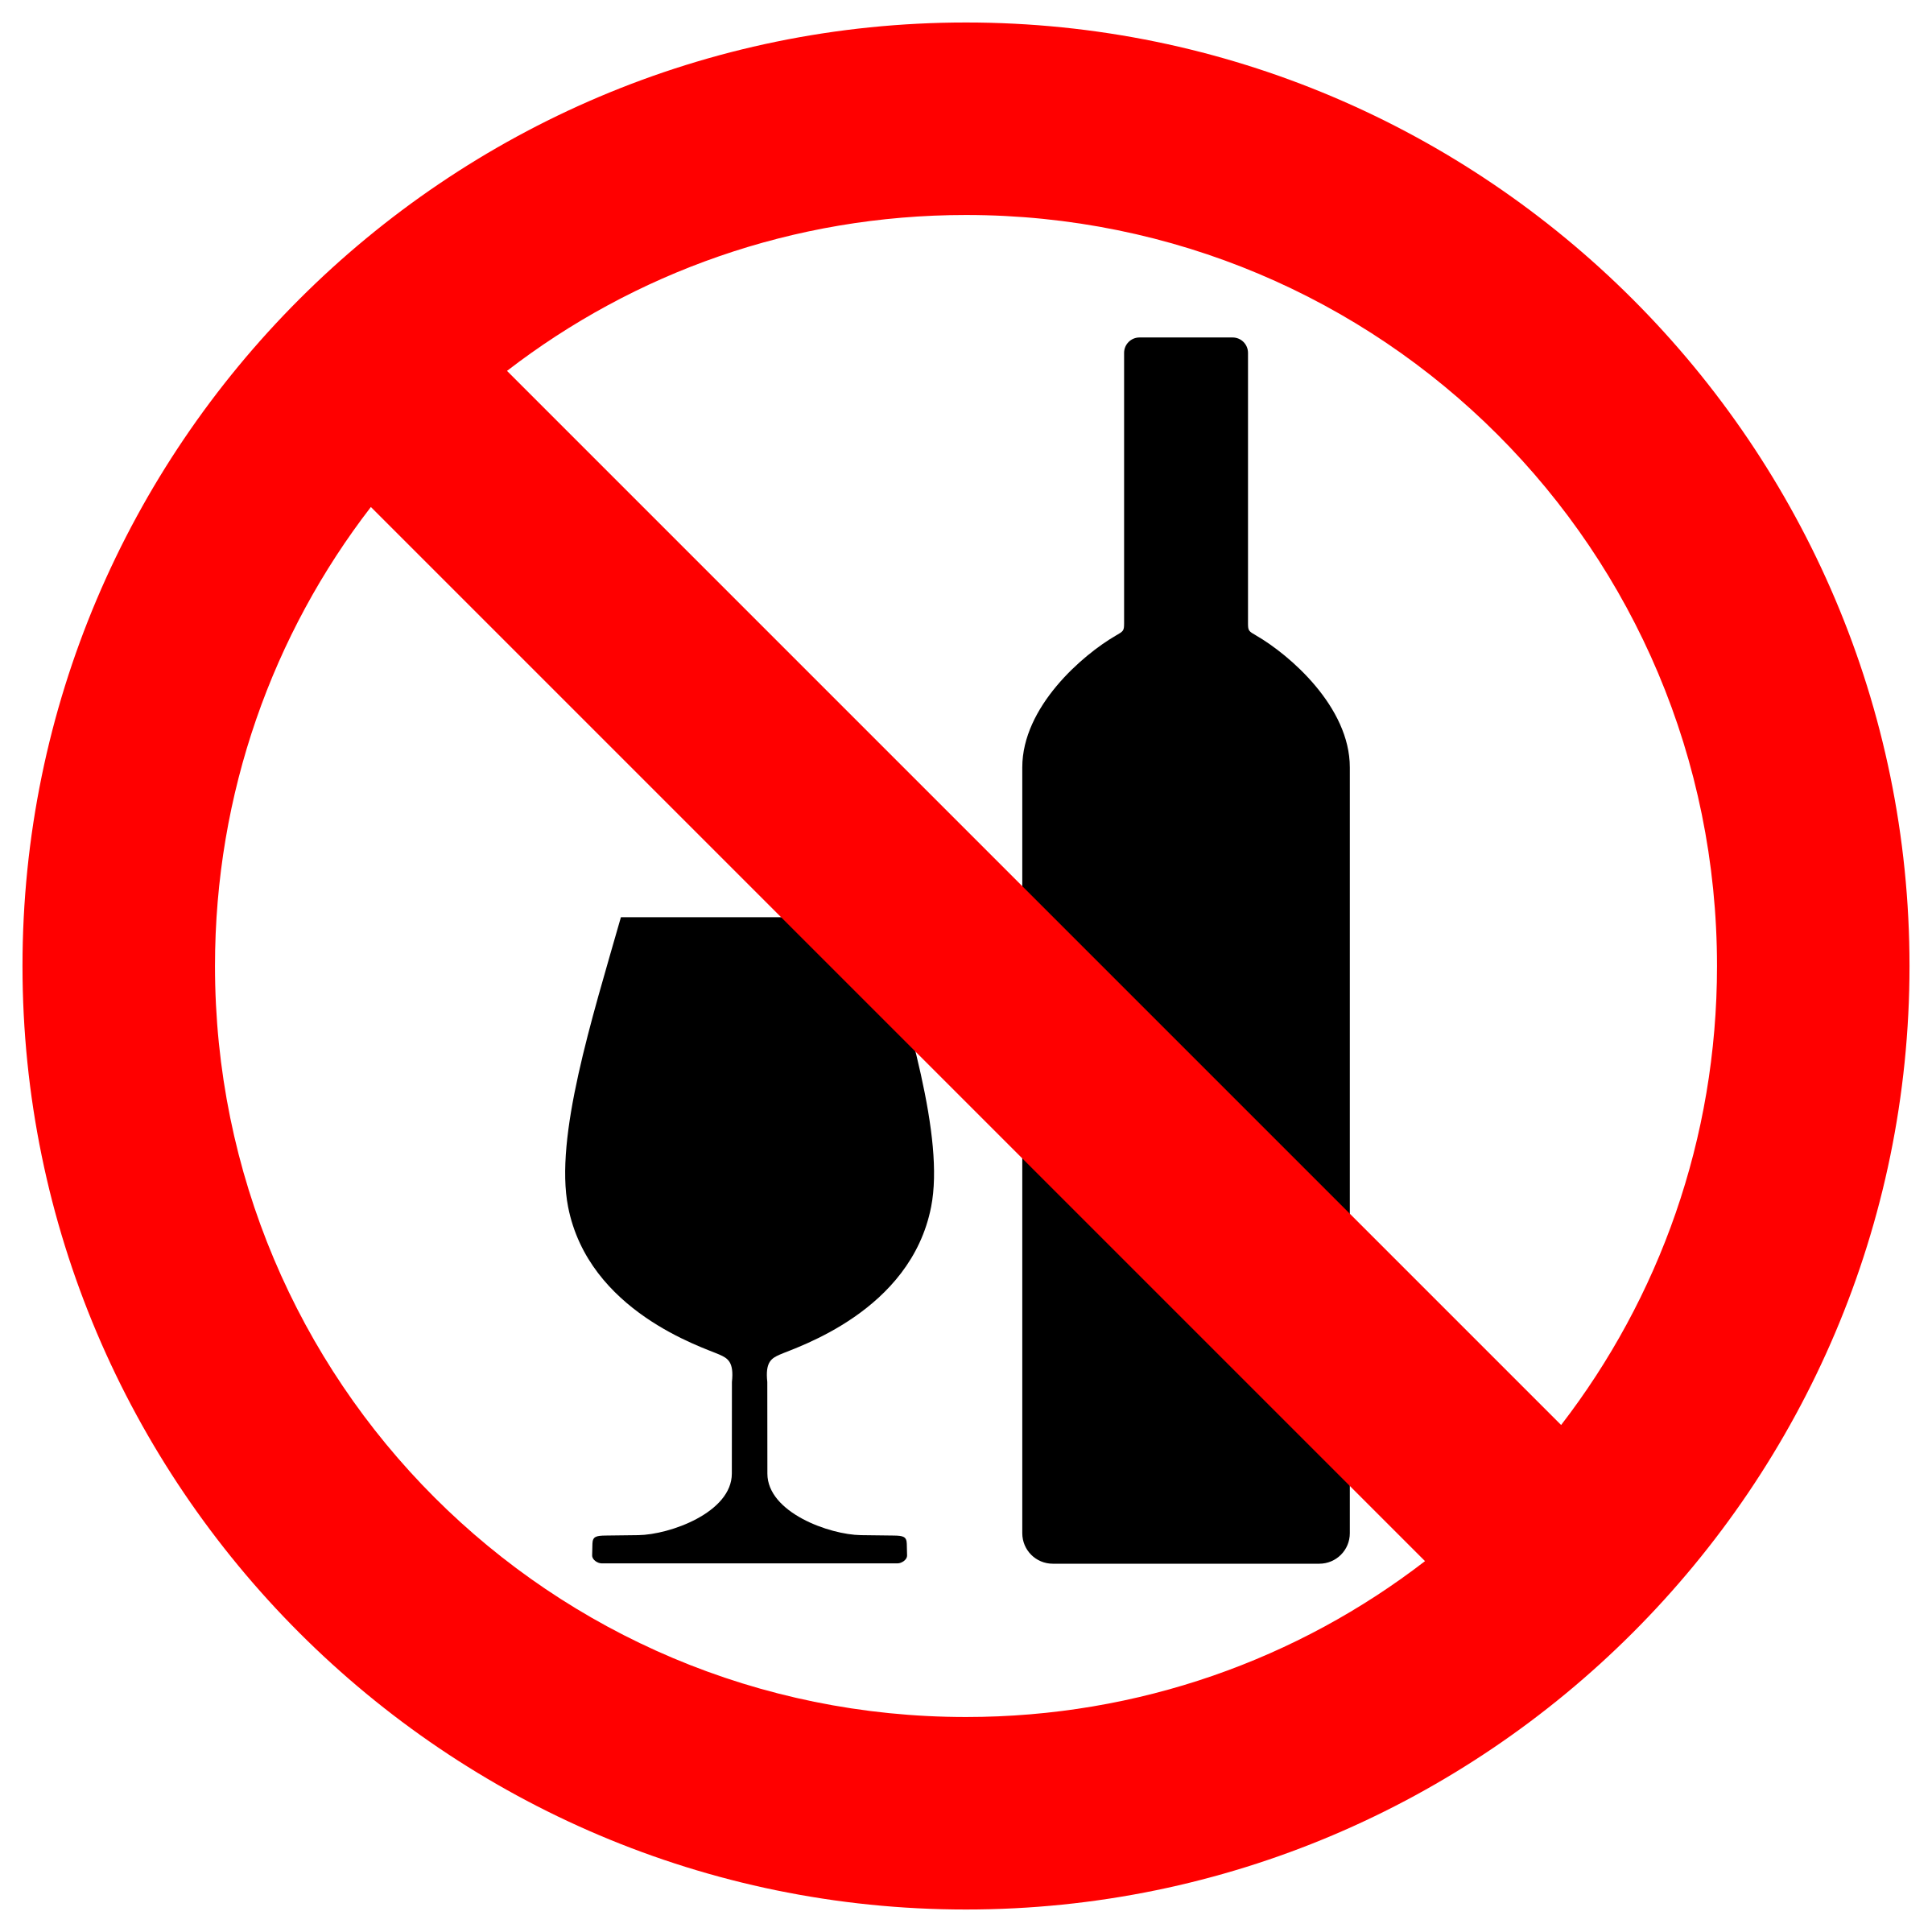 No alcohol png. Don t drink tomar